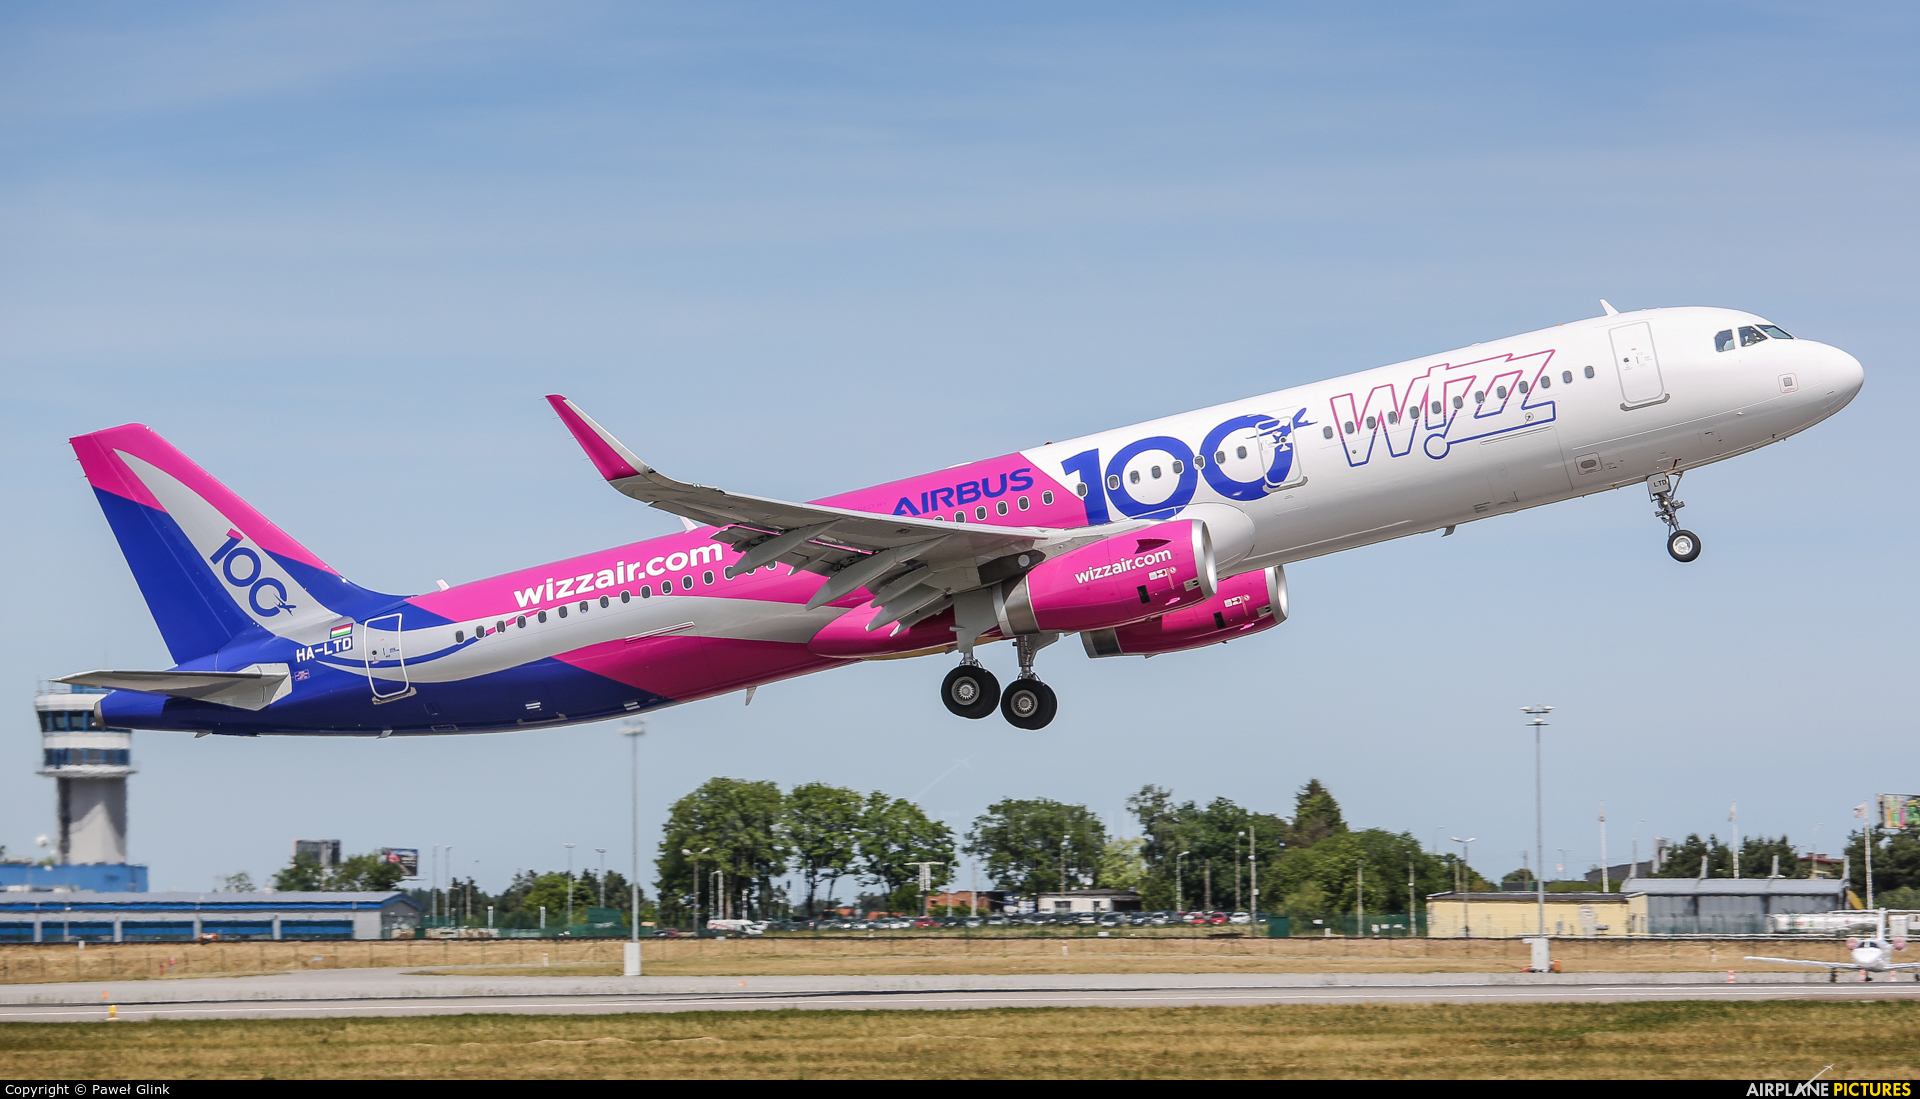 Wizz Air HA-LTD aircraft at Gdańsk - Lech Wałęsa